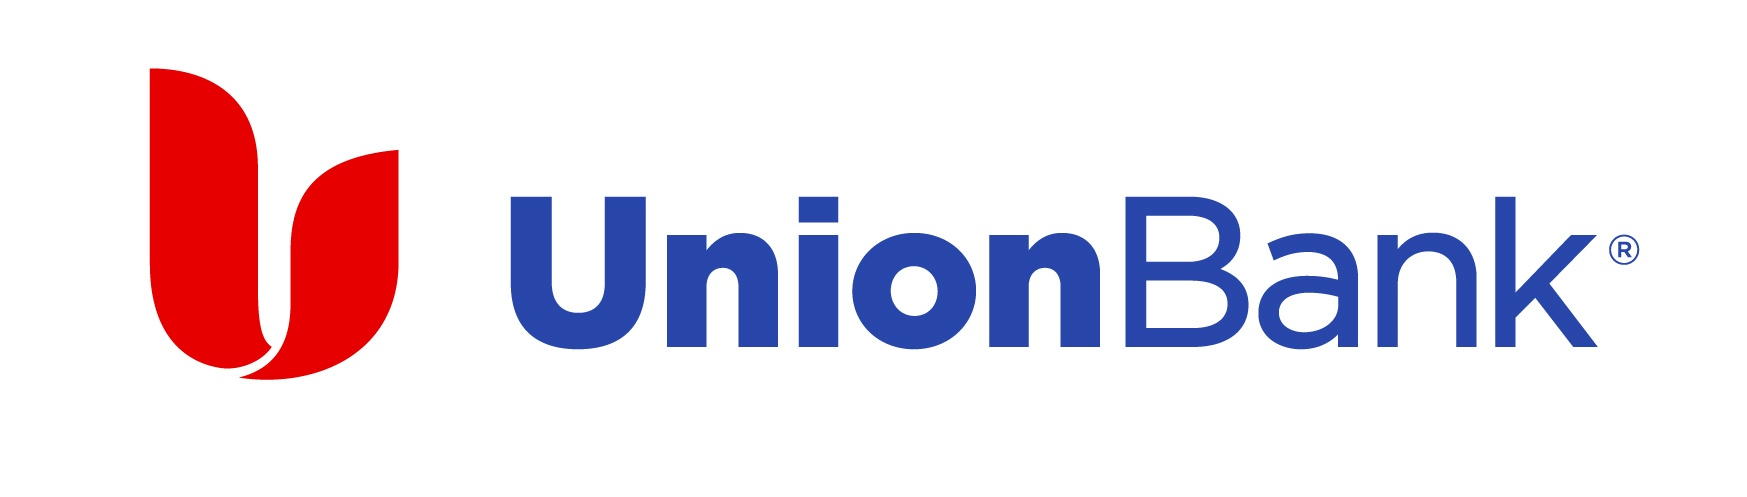 Union Bank Enhances its Private Wealth Management Team with New Hires